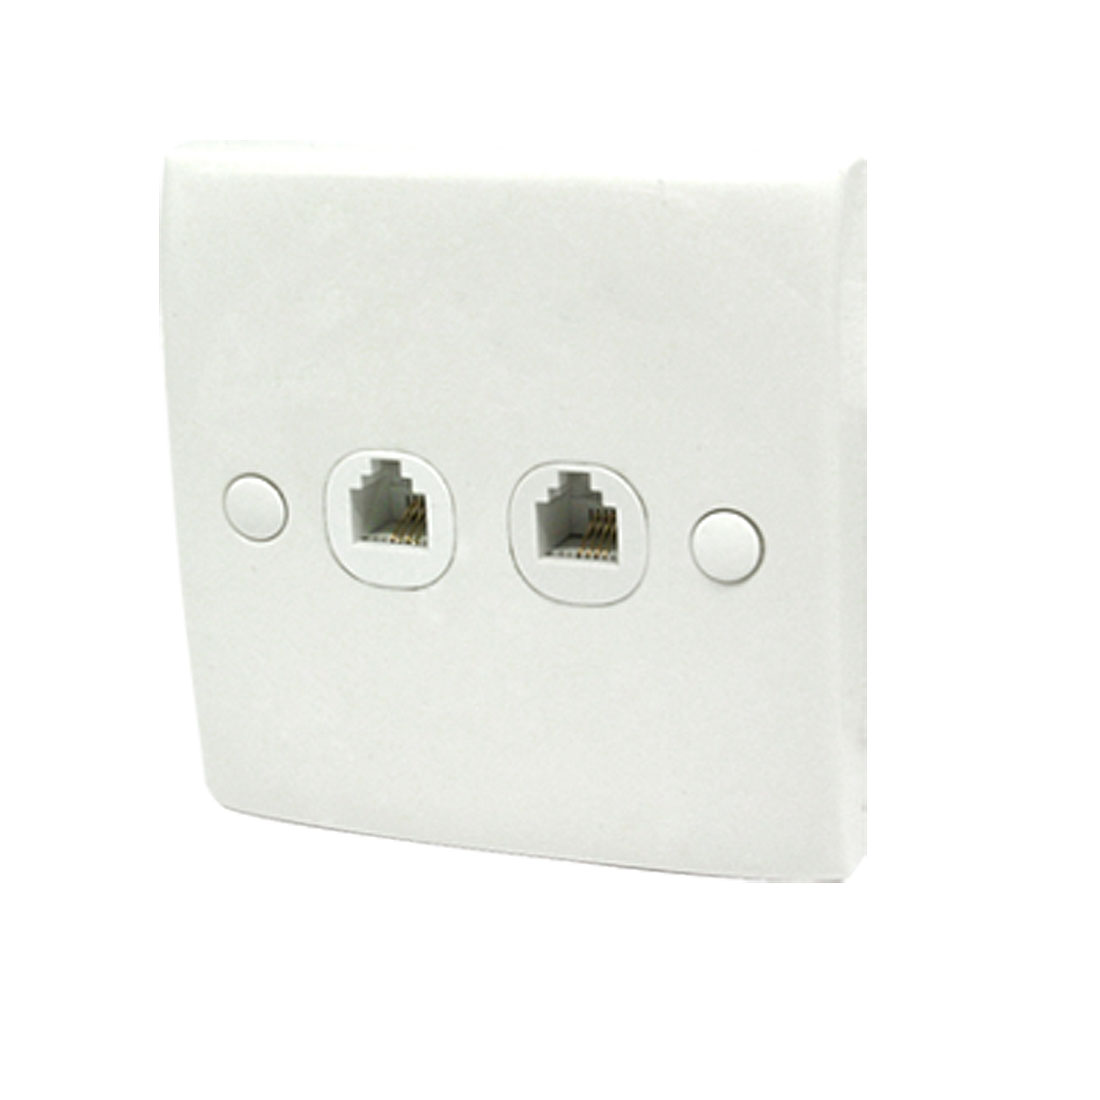 White 2-Gang Double RJ11 Phone Modular Jack Outlet Wall Plate